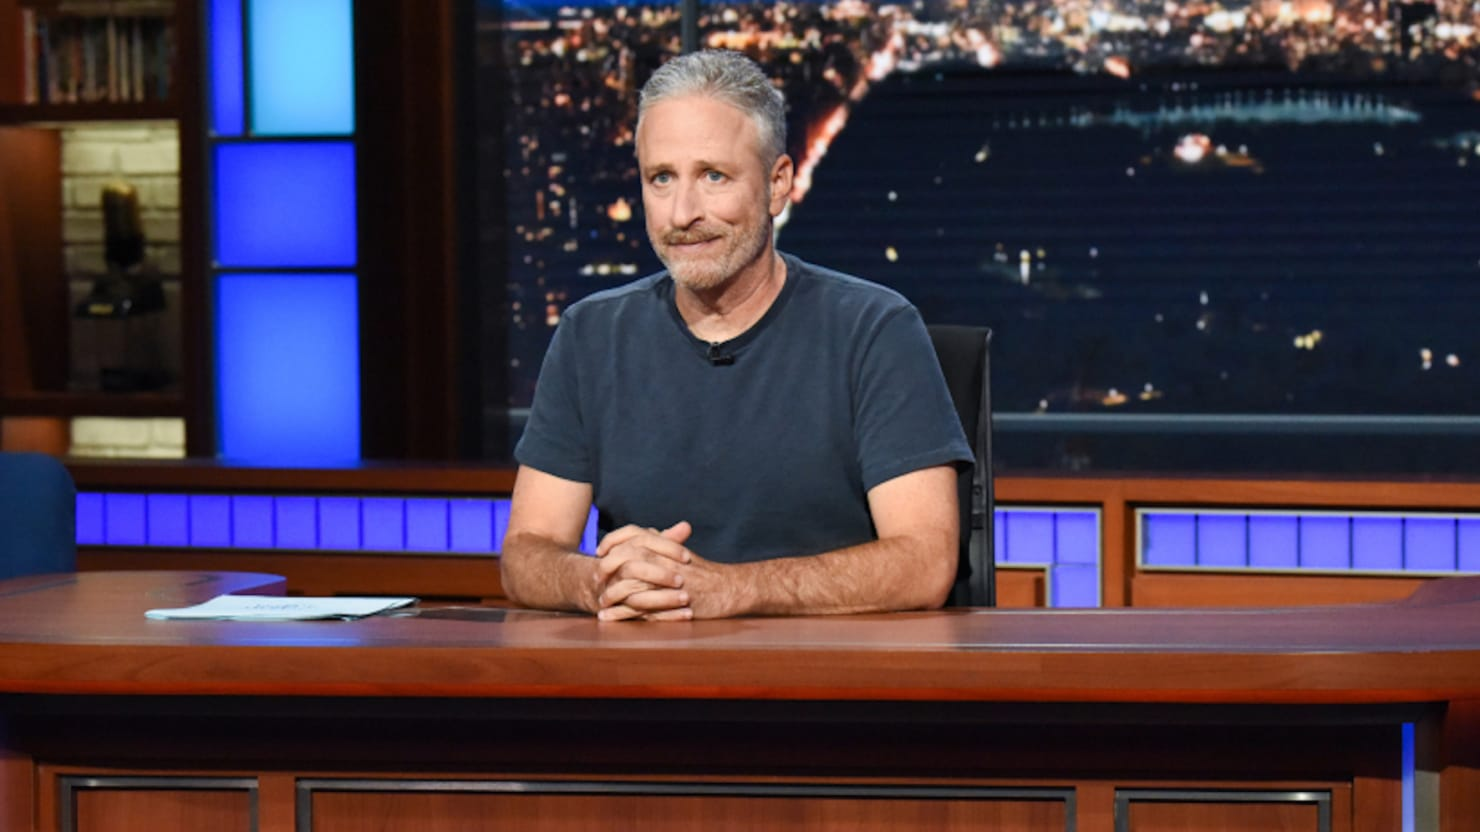 Jon Stewart Delivers Fiery Address to President Trump: 'We Will Prevail'